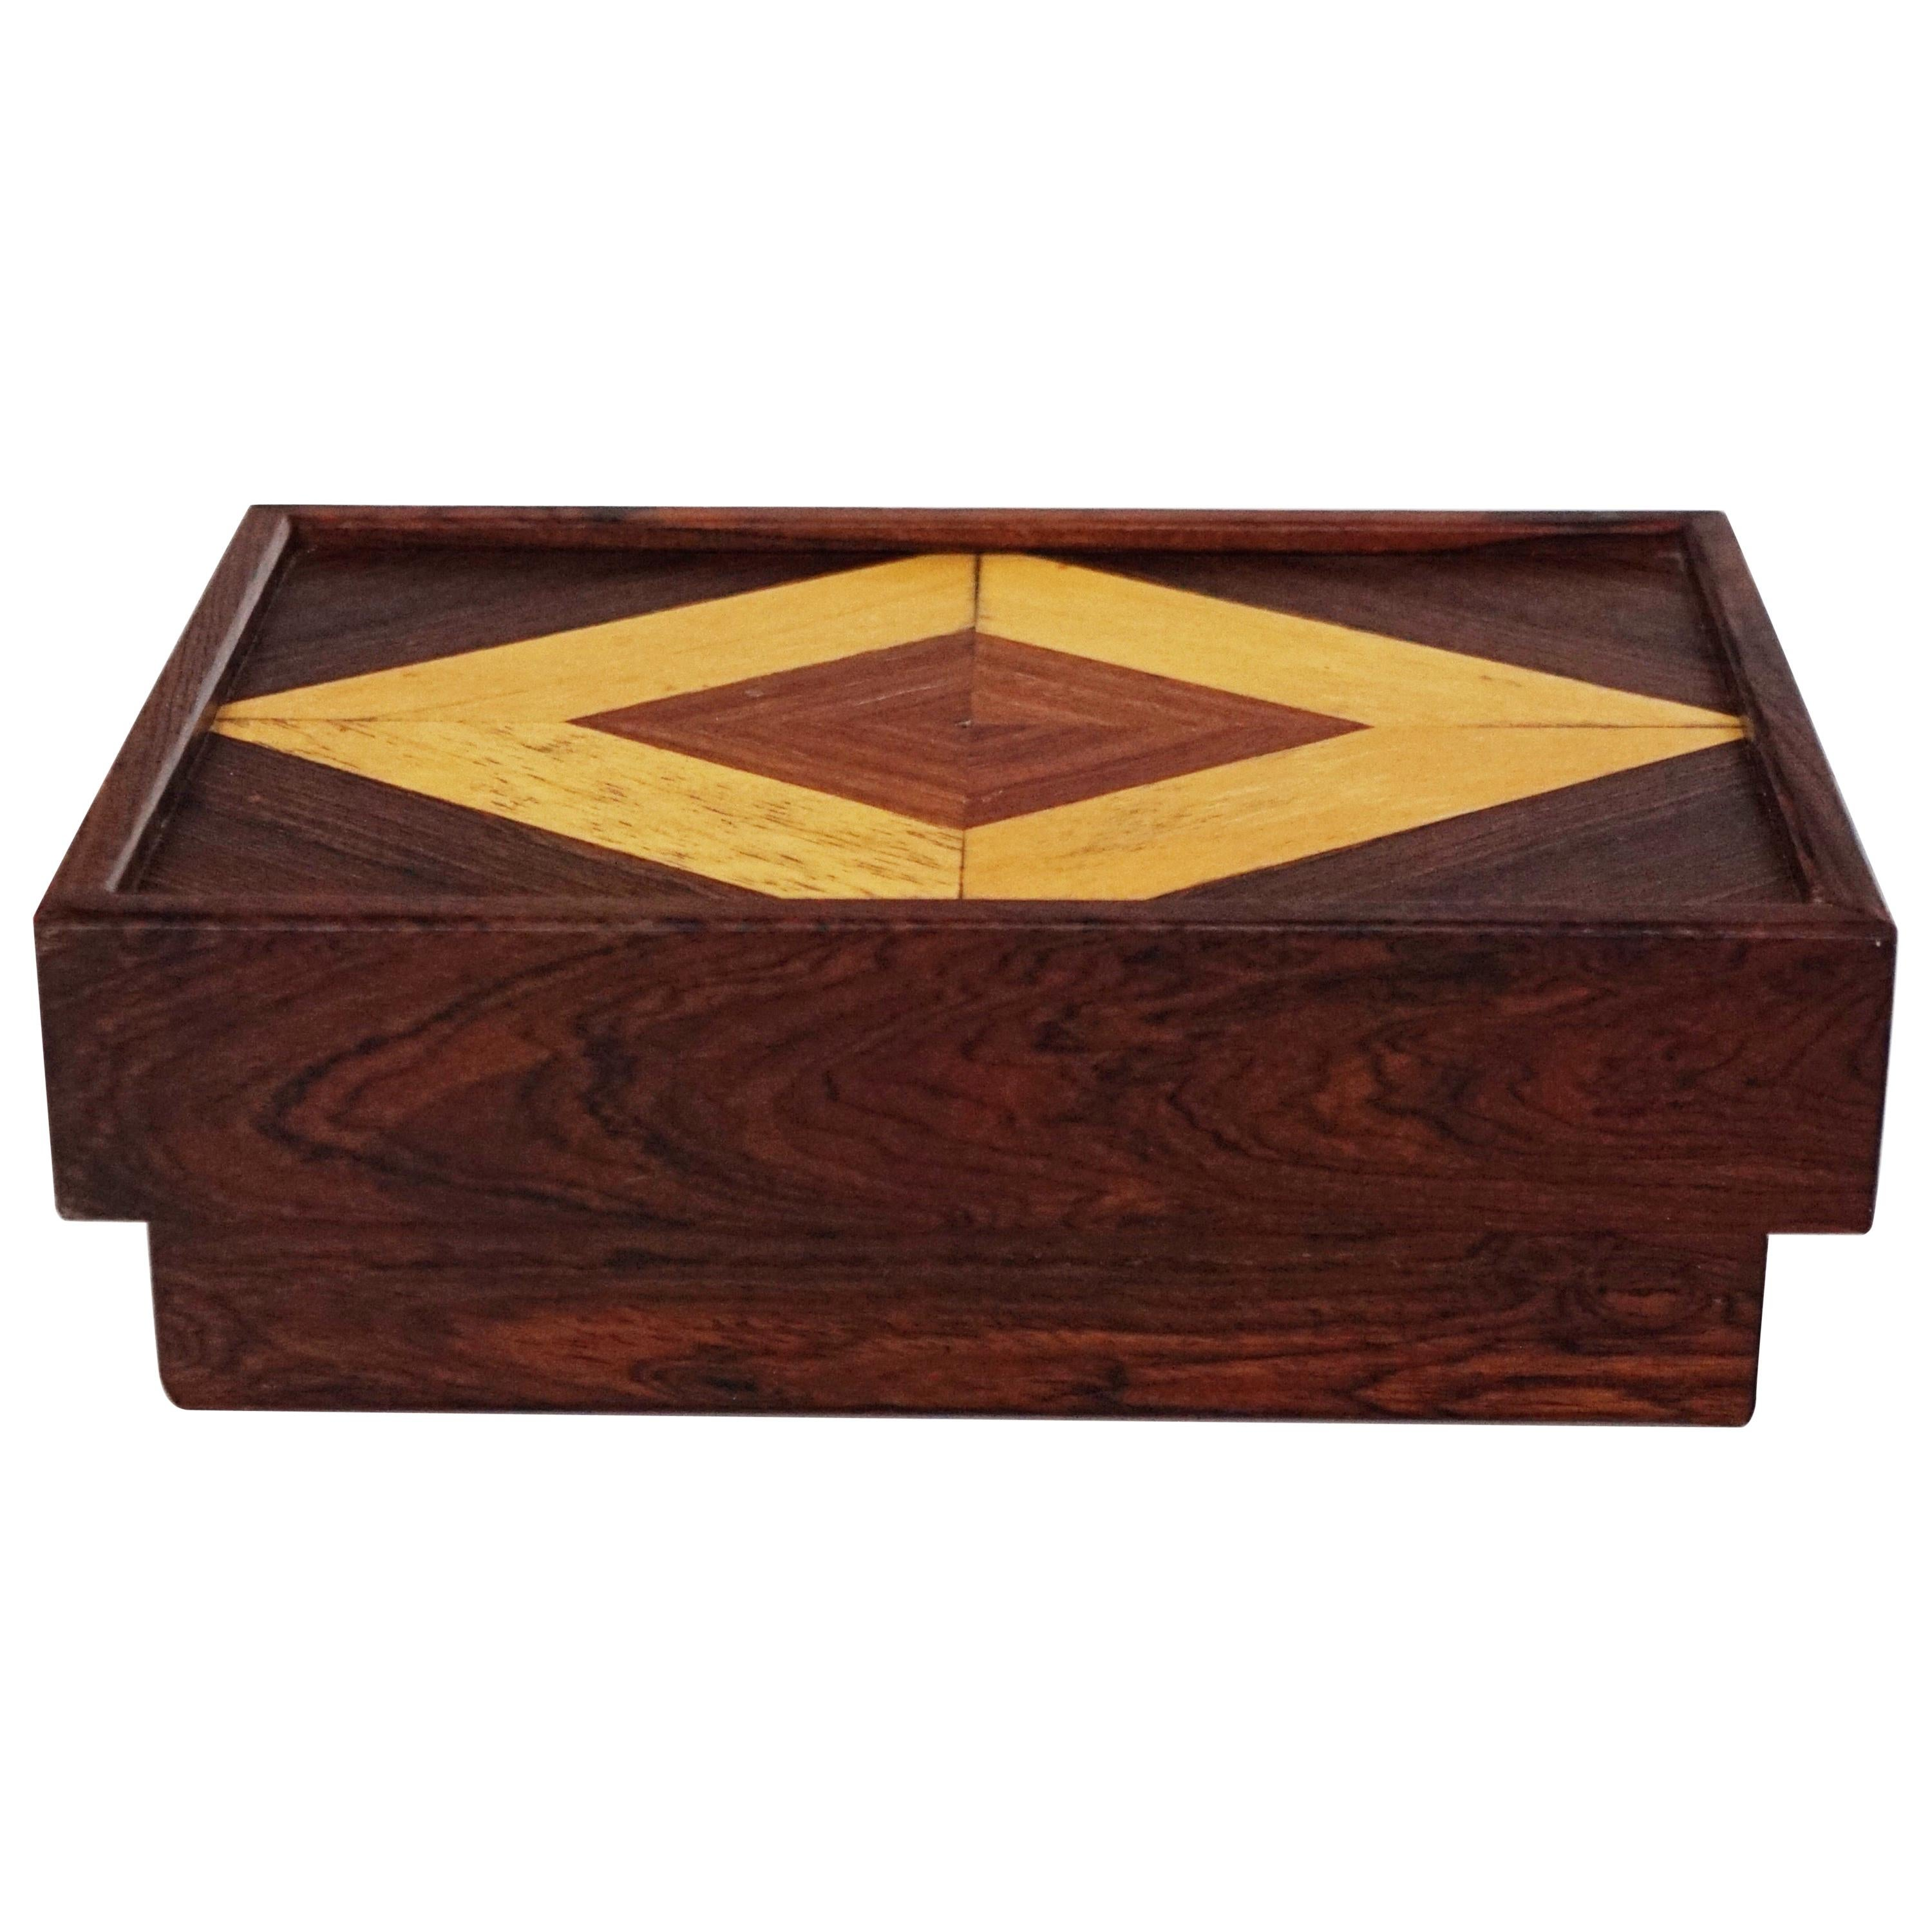 Don Shoemaker for Senal S.A. Cocobolo Rosewood Lidded Catch-All Box, Signed